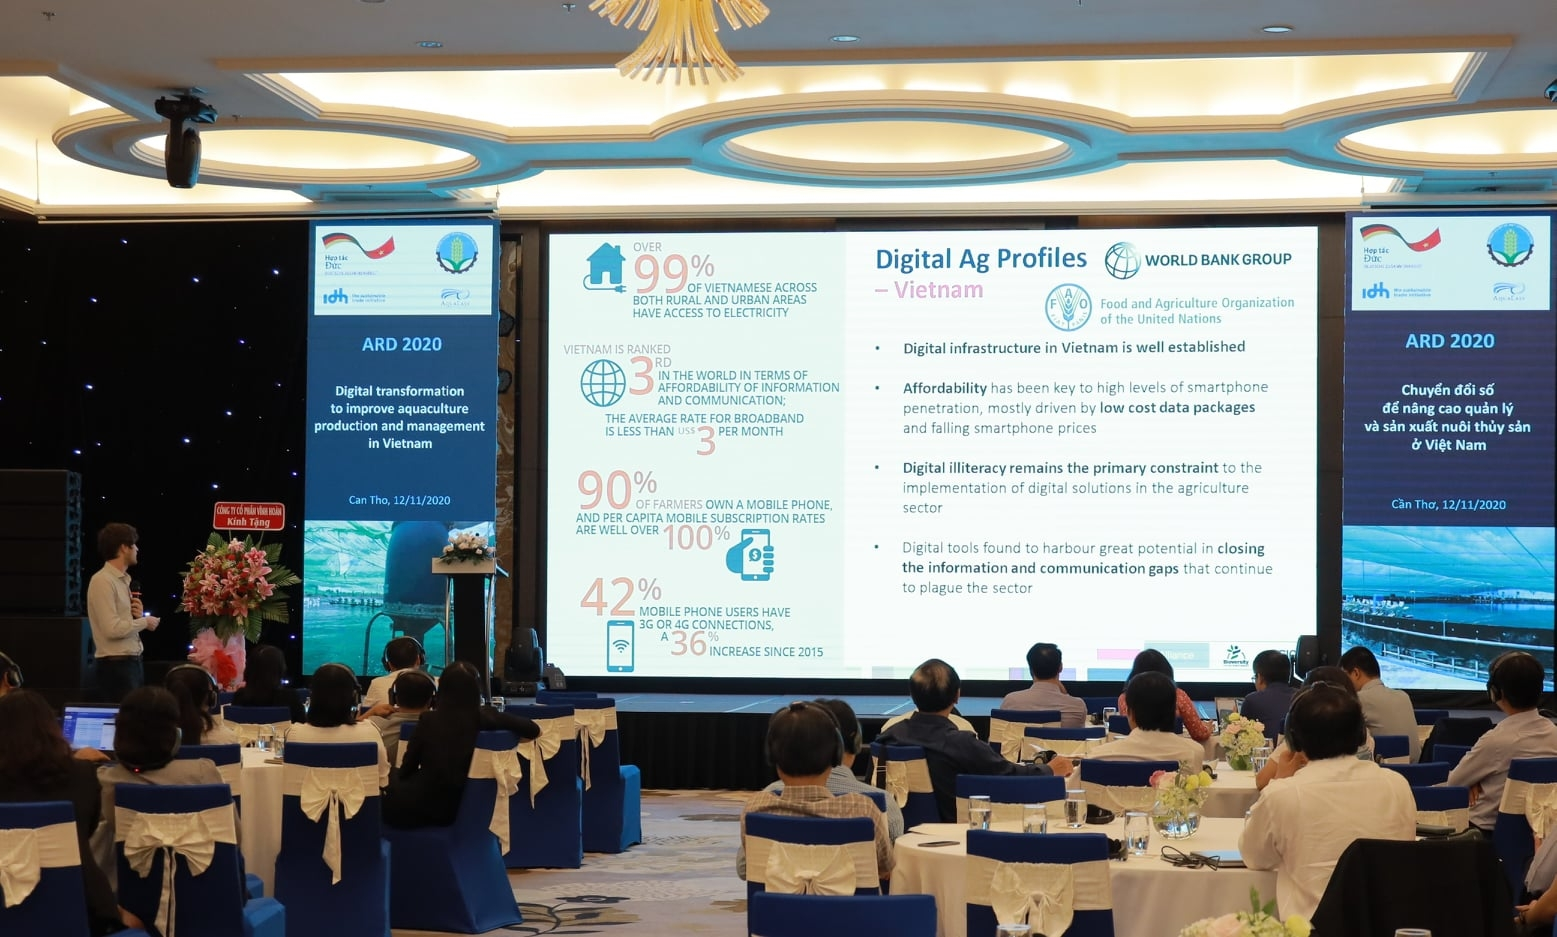 Improving Vietnam's aquaculture production and management in the digital age